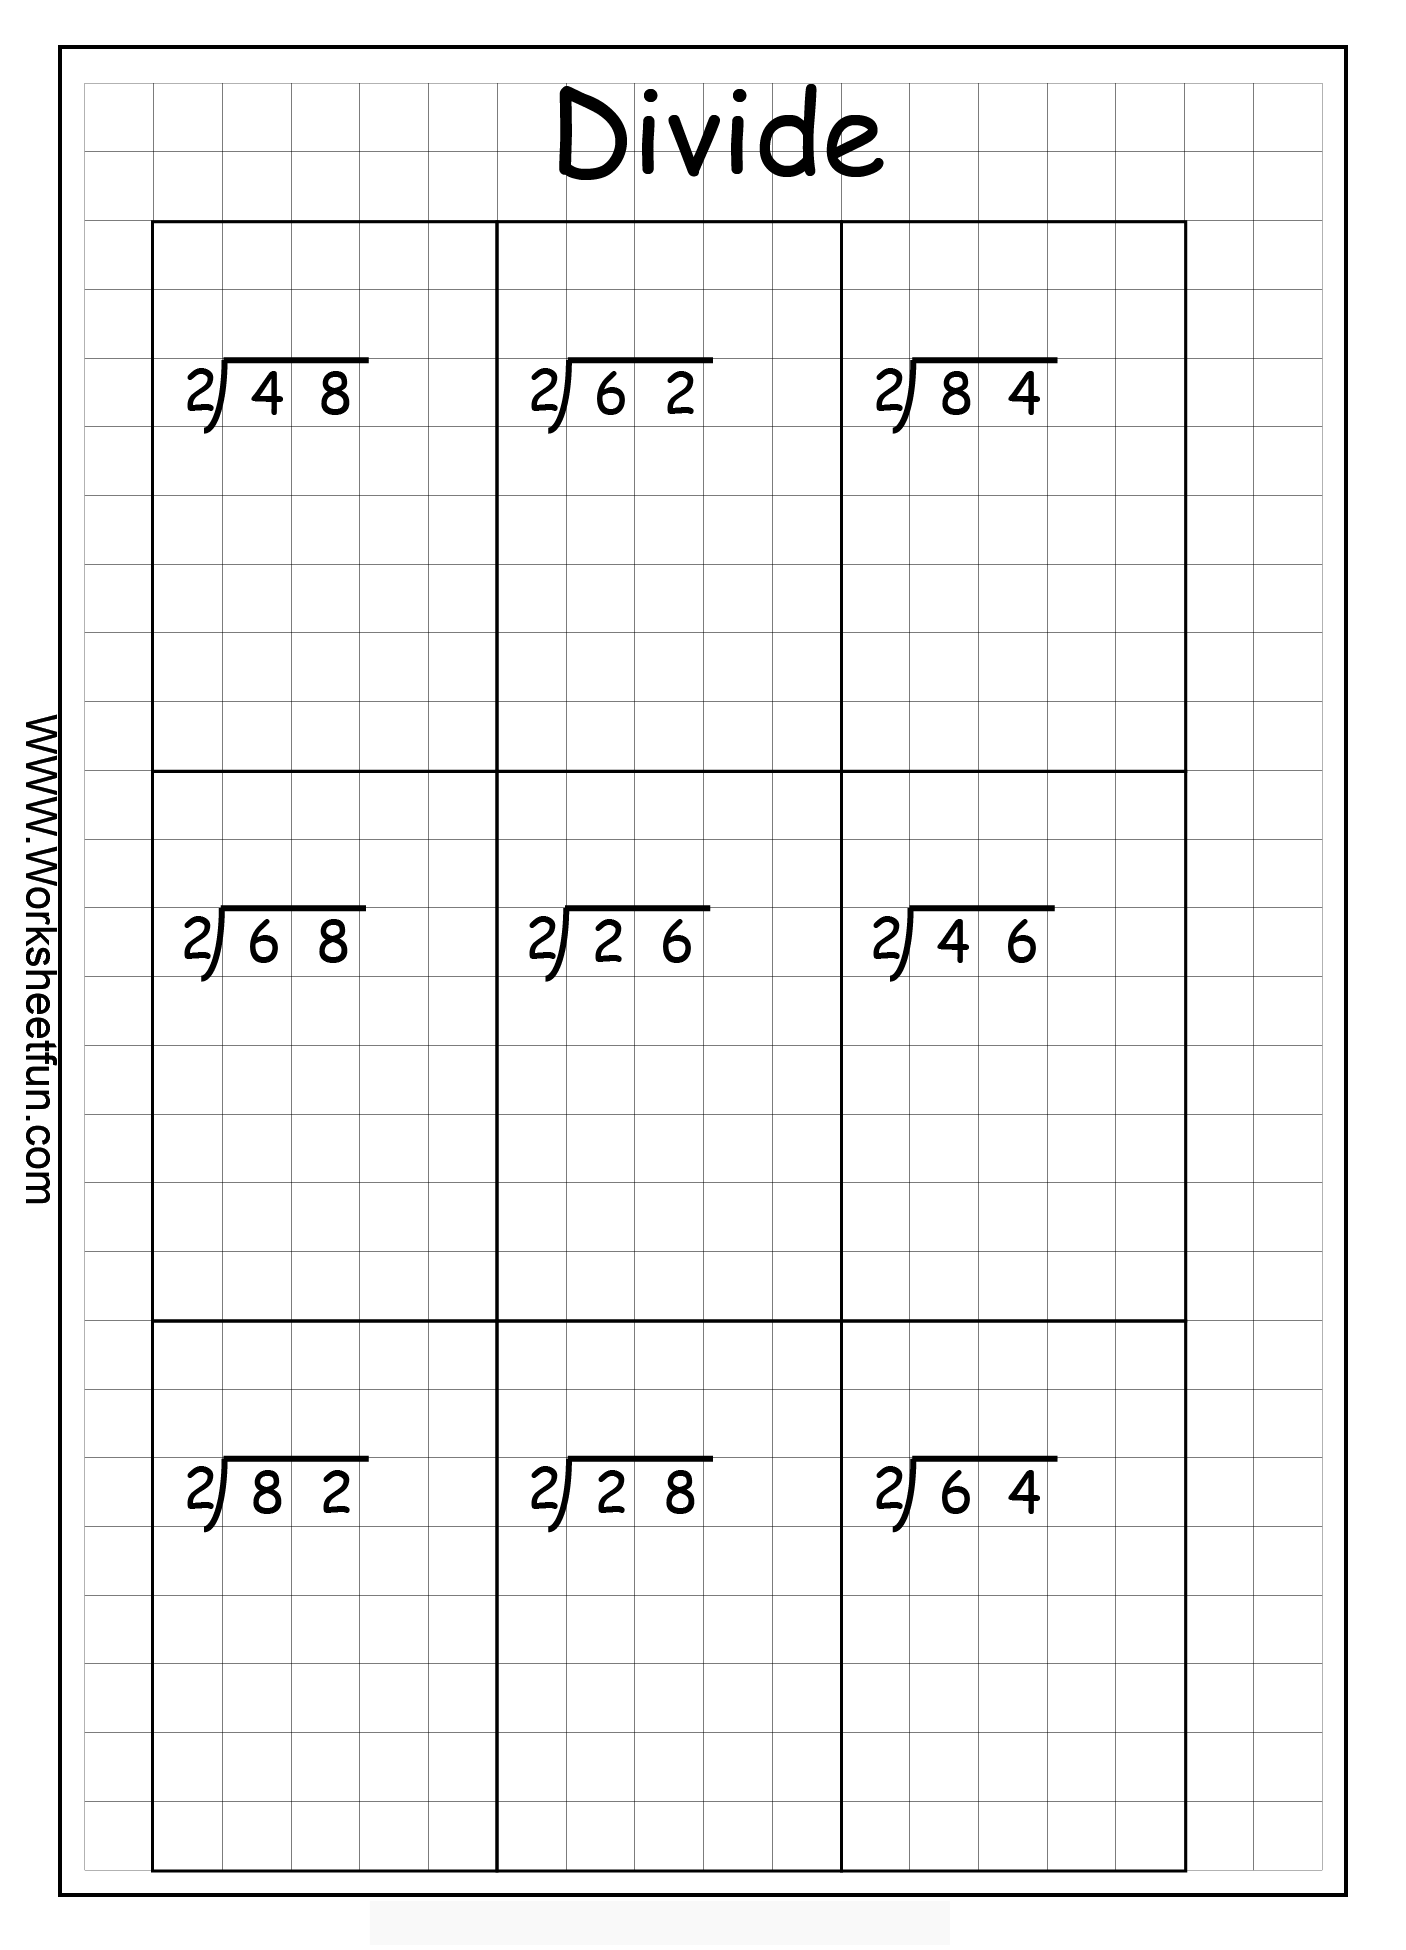 Long Division 2 Digits By 1 Digit No Remainder